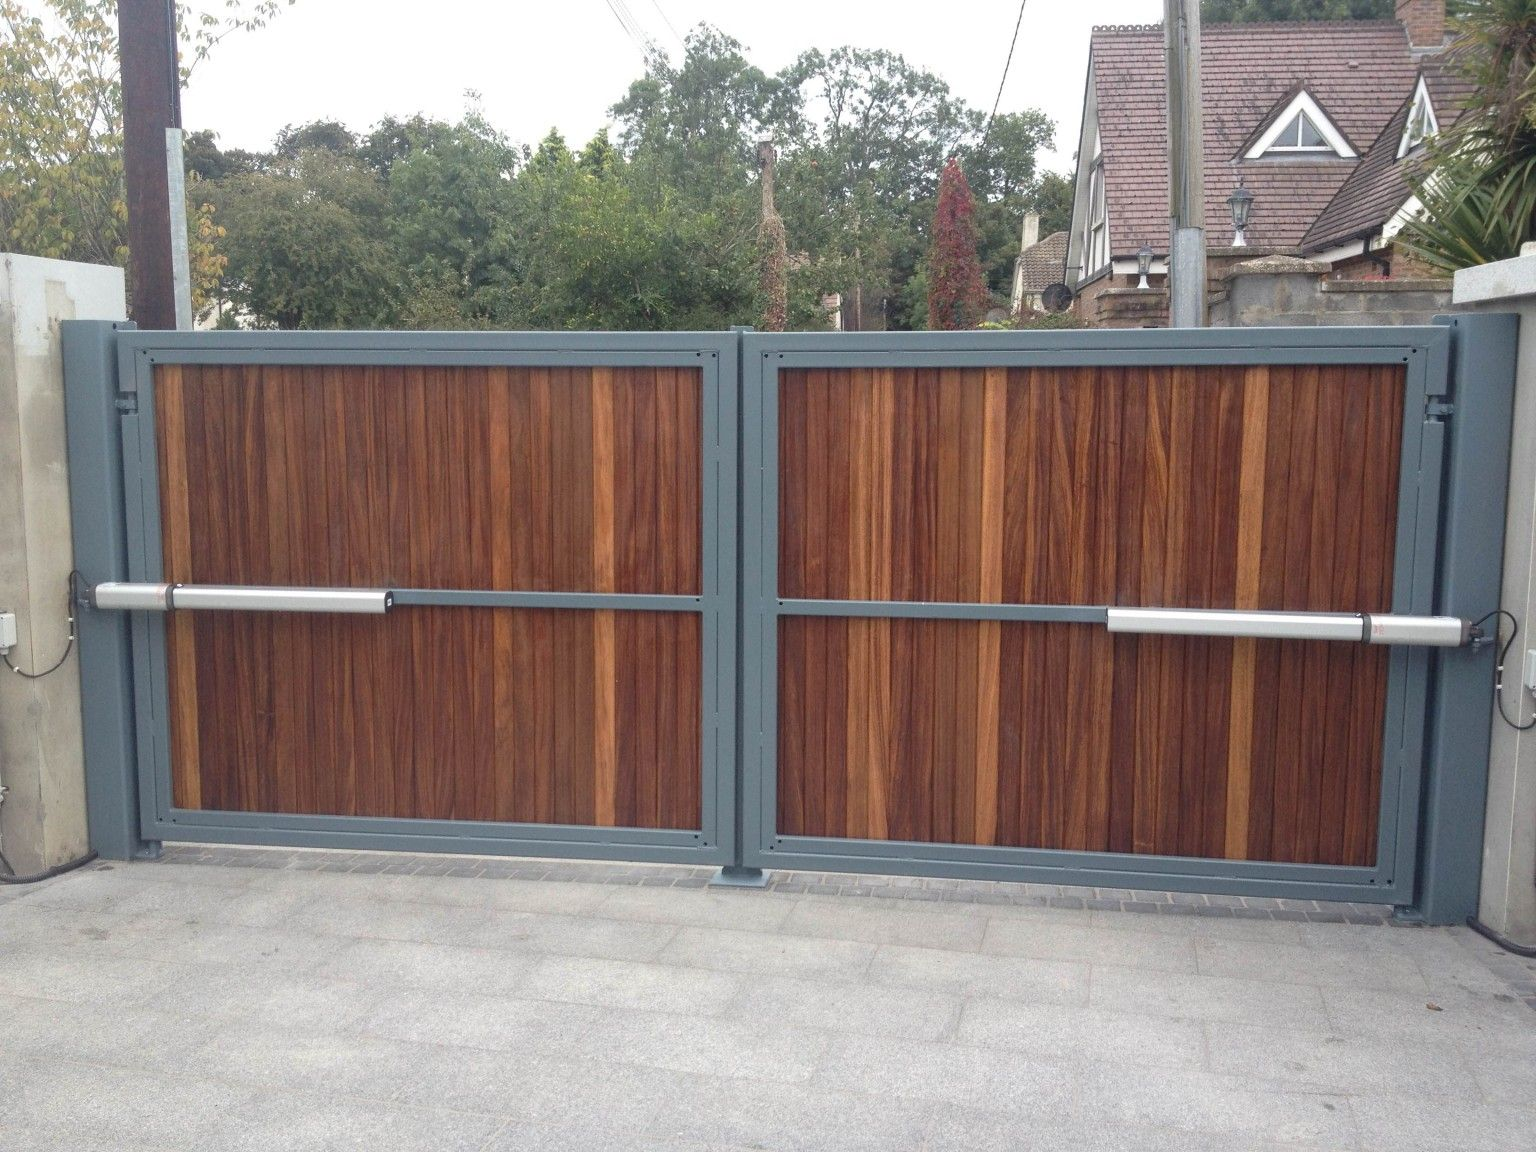 Irish-Fencing-Services-Fences-Gates-and-Railings-83